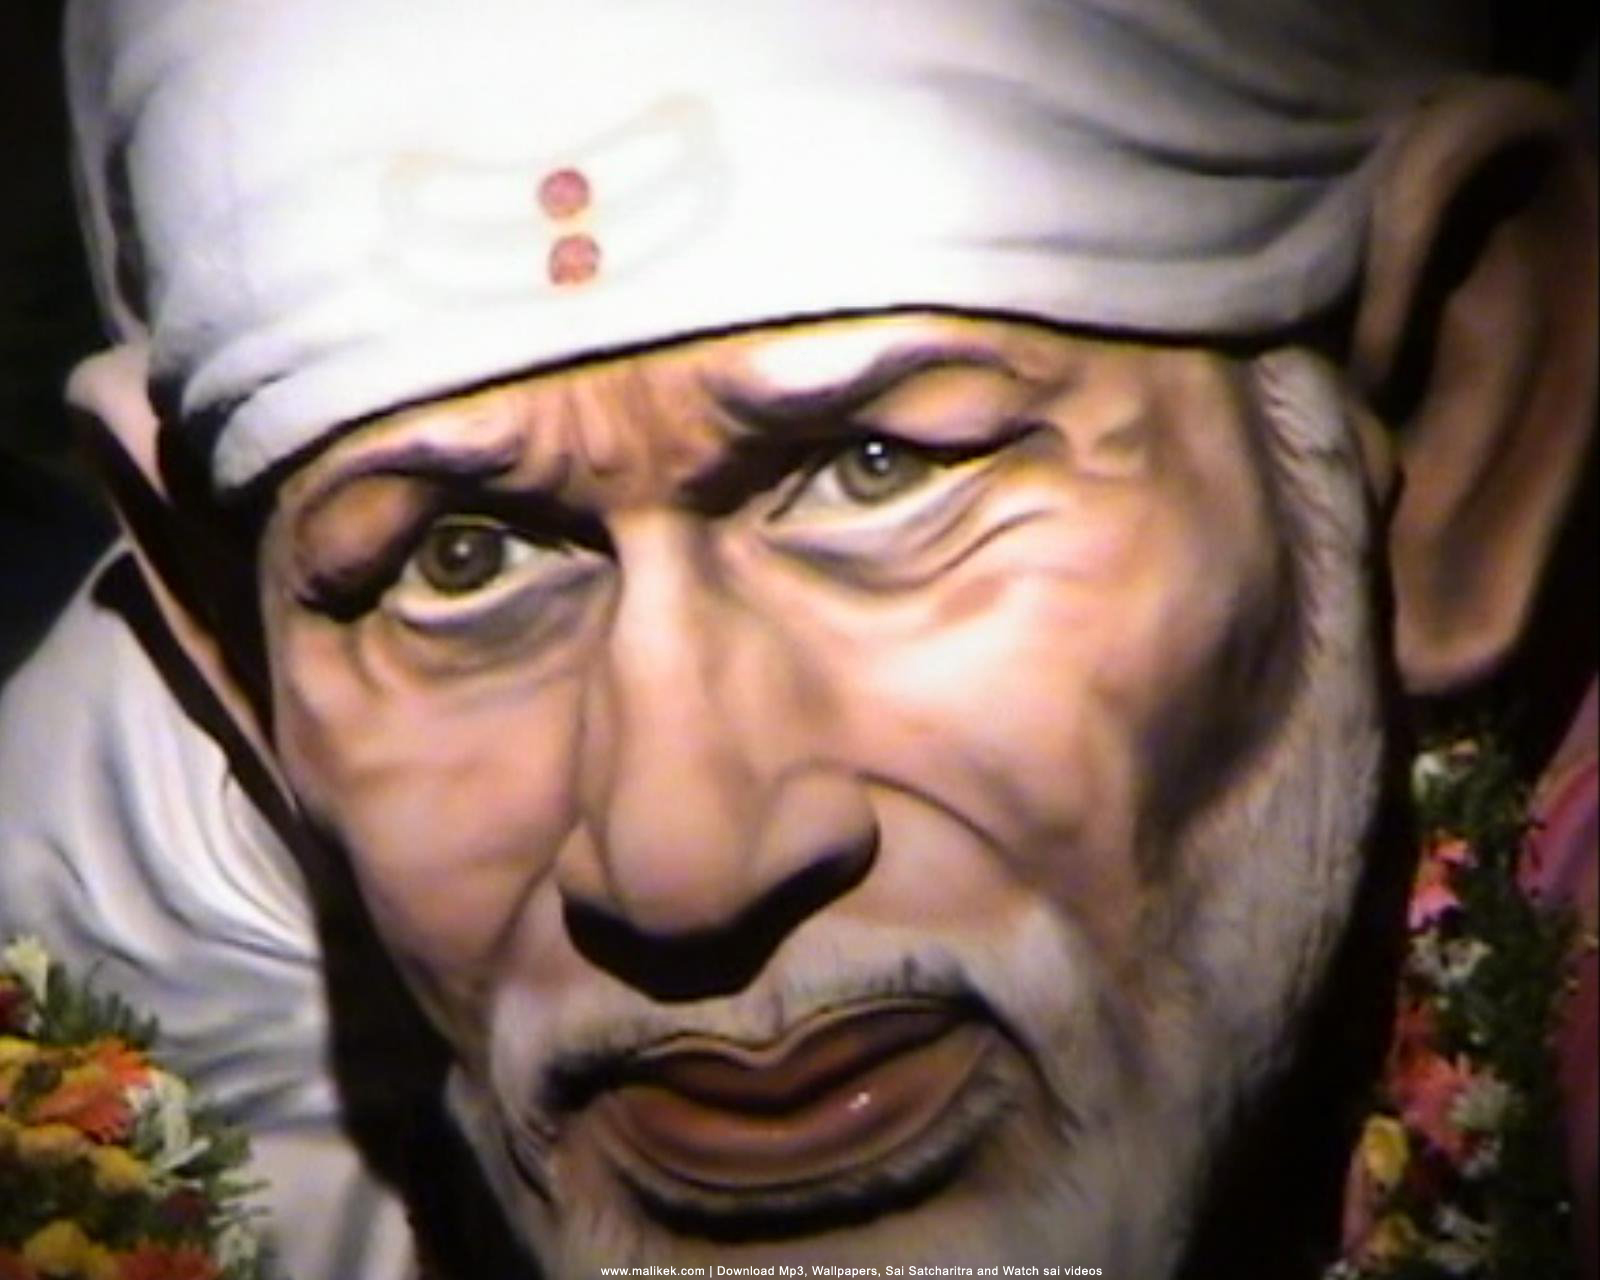 Shri sai baba songs free download tamil.